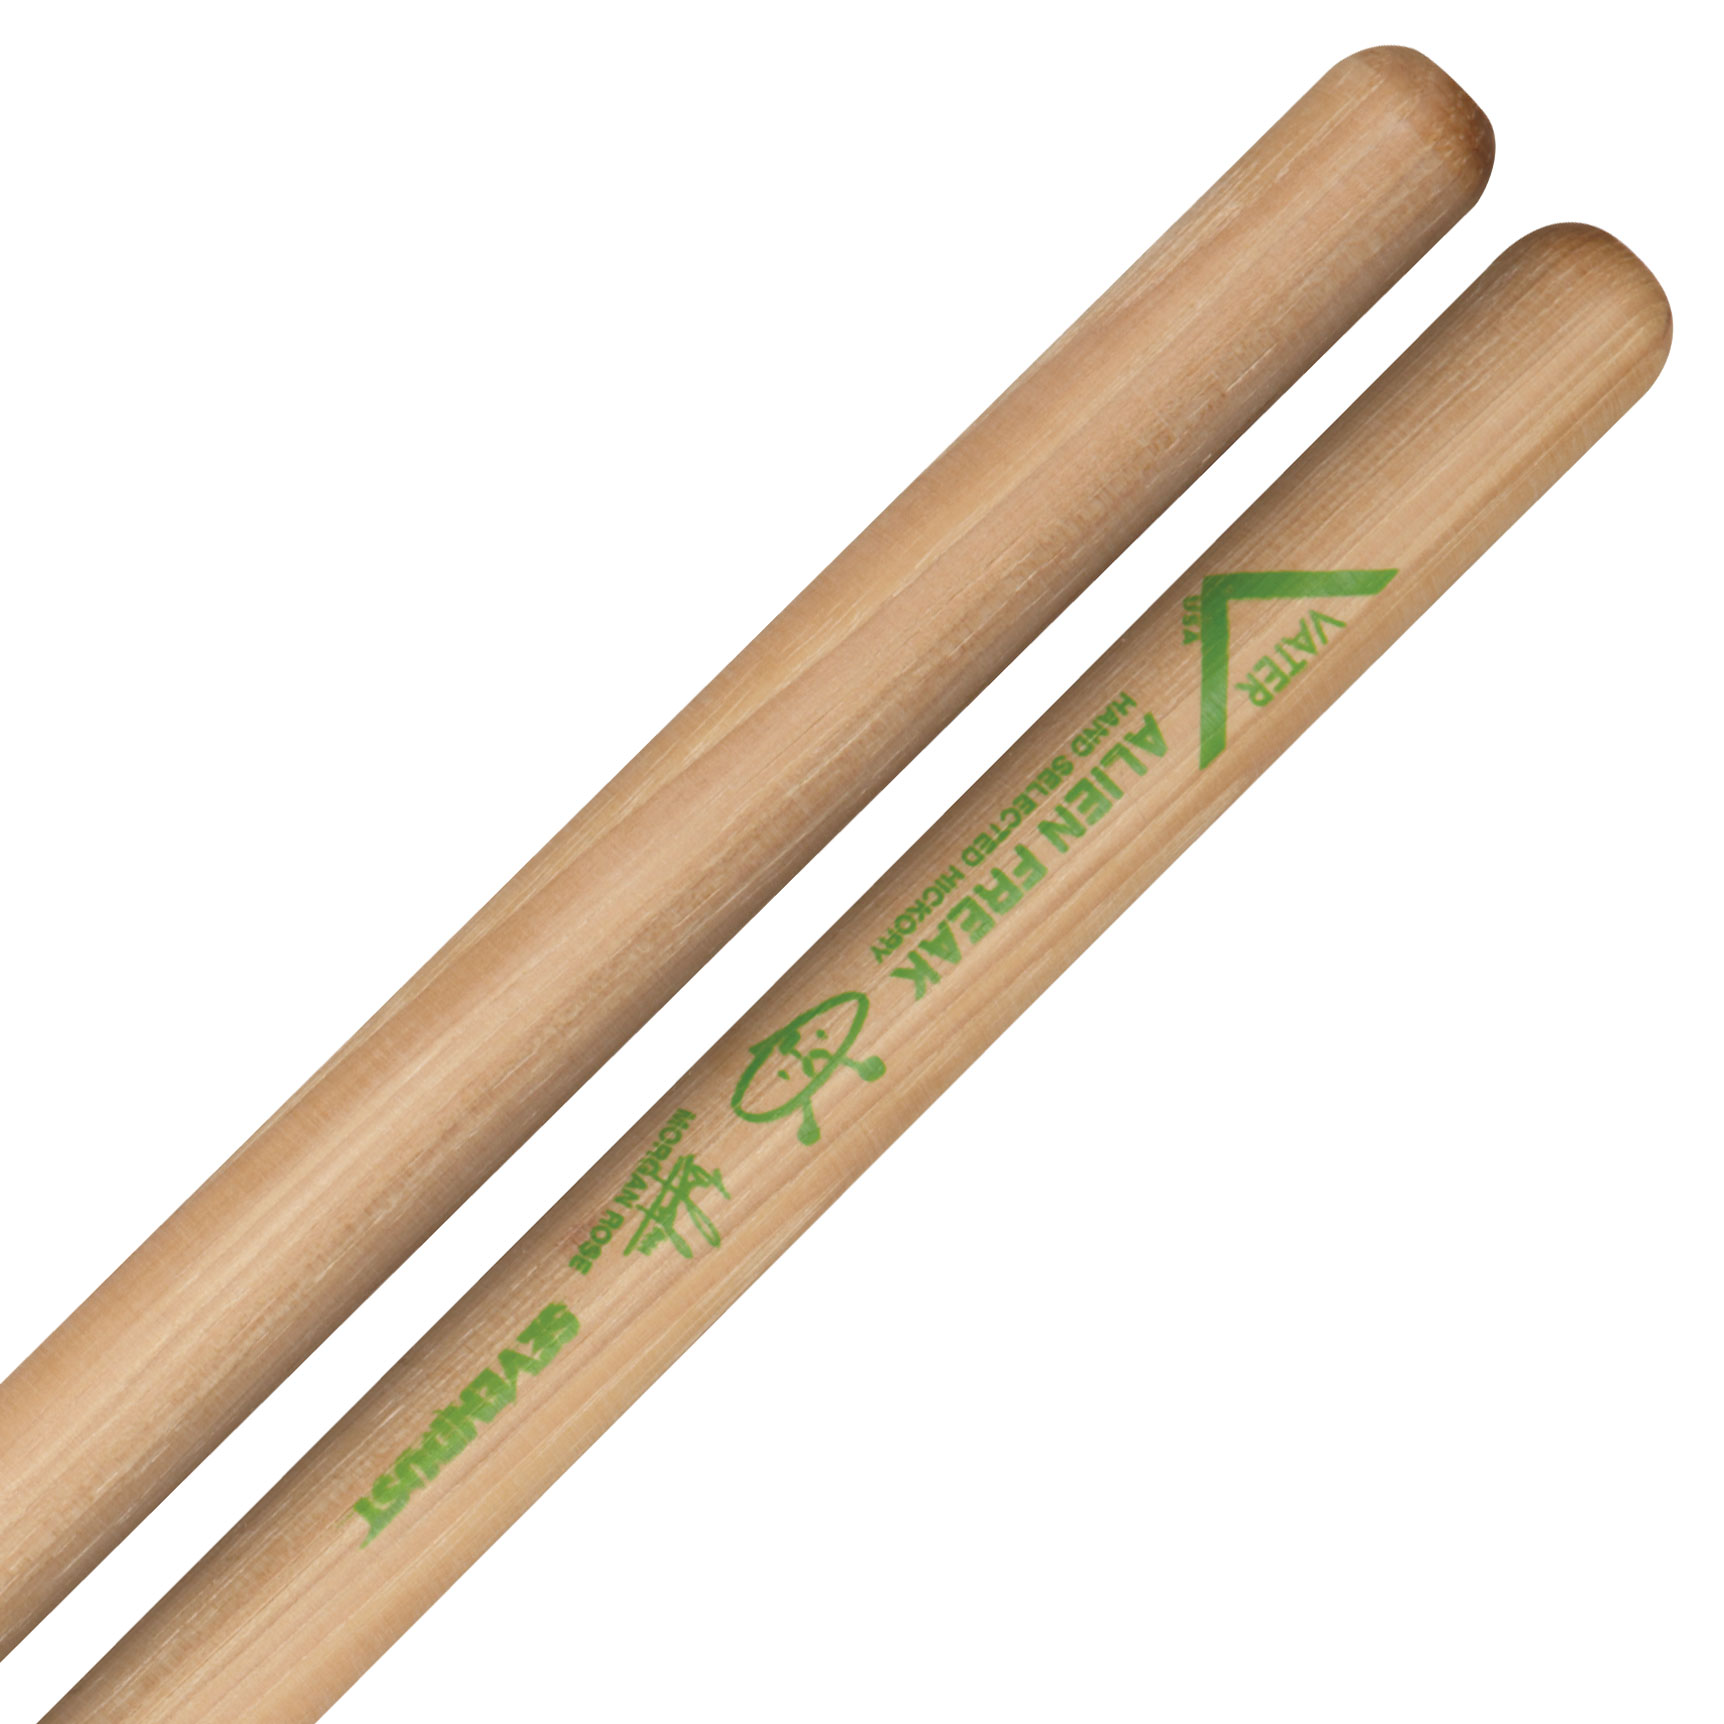 Vater Morgan Rose Alien Freak Signature Drumsticks